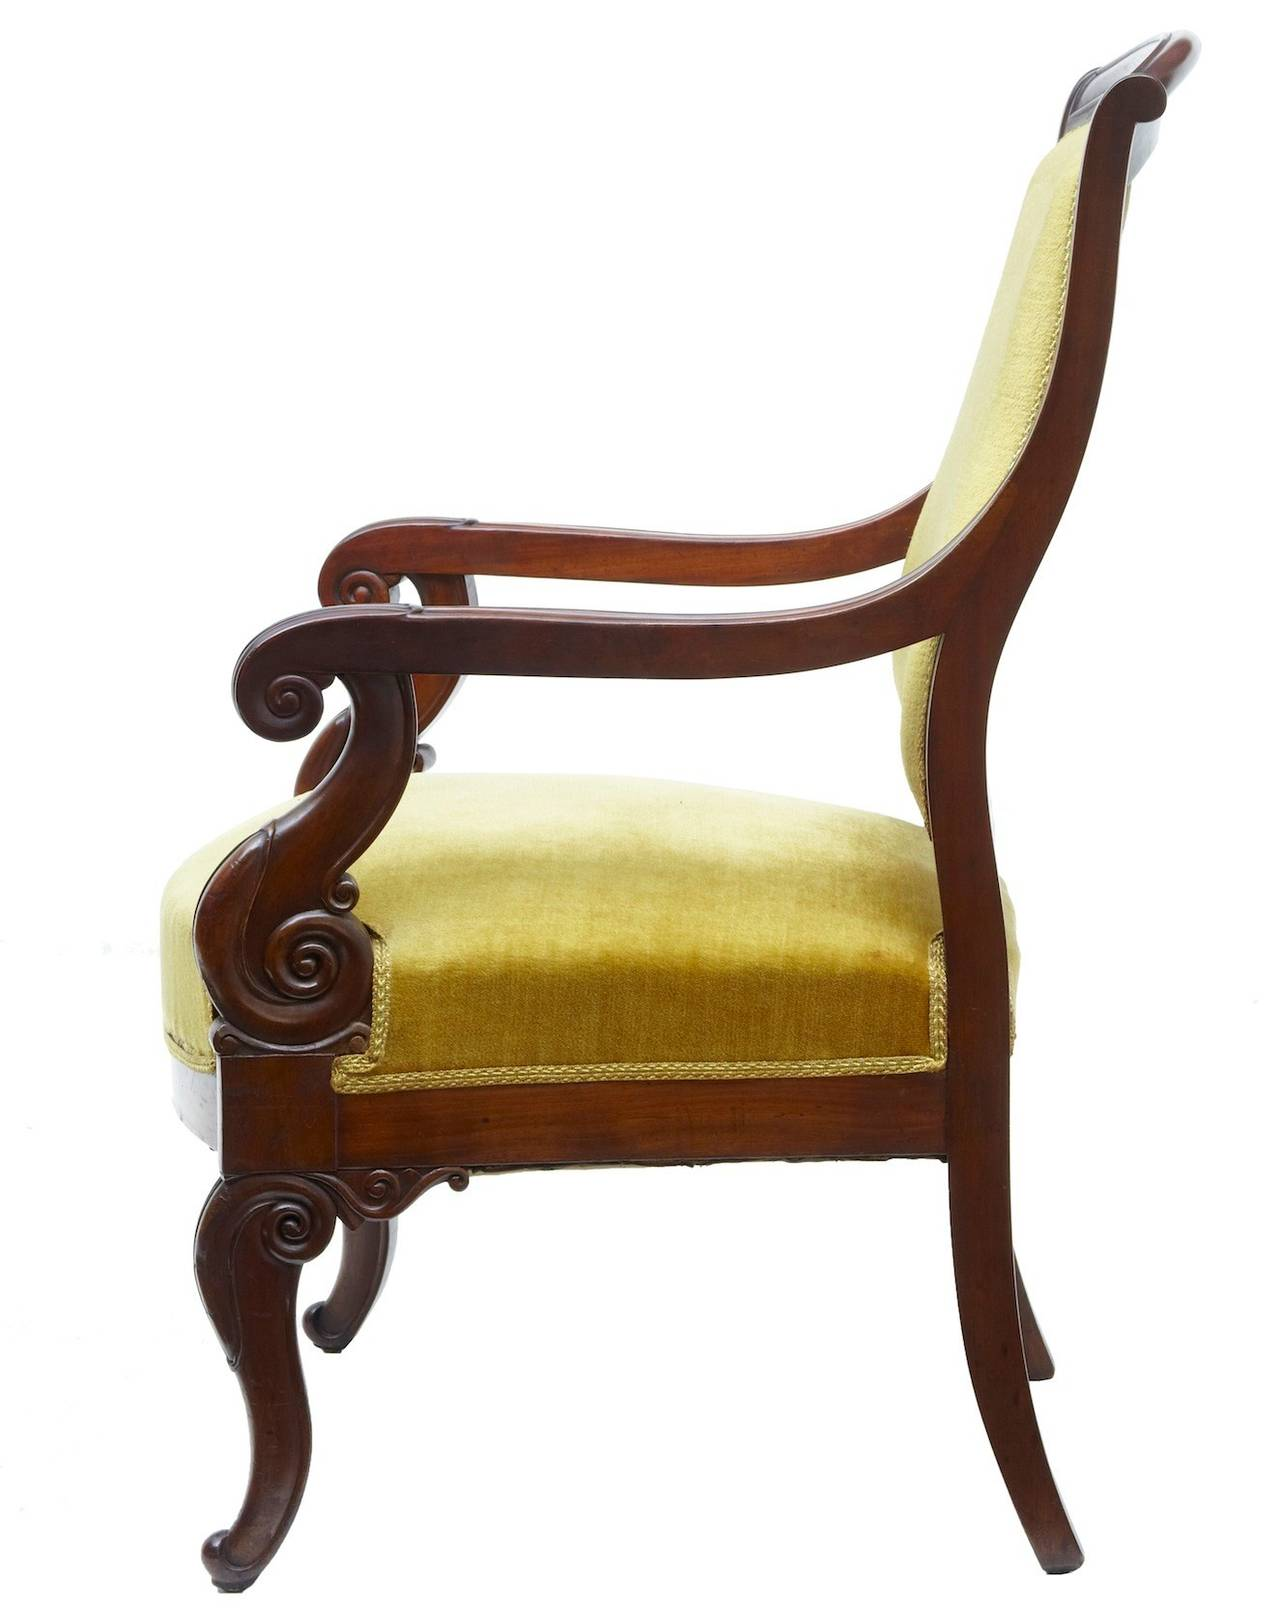 Mahogany armchair, circa 1840  Scrolled arms and legs.  Measures: Height 37 1/2